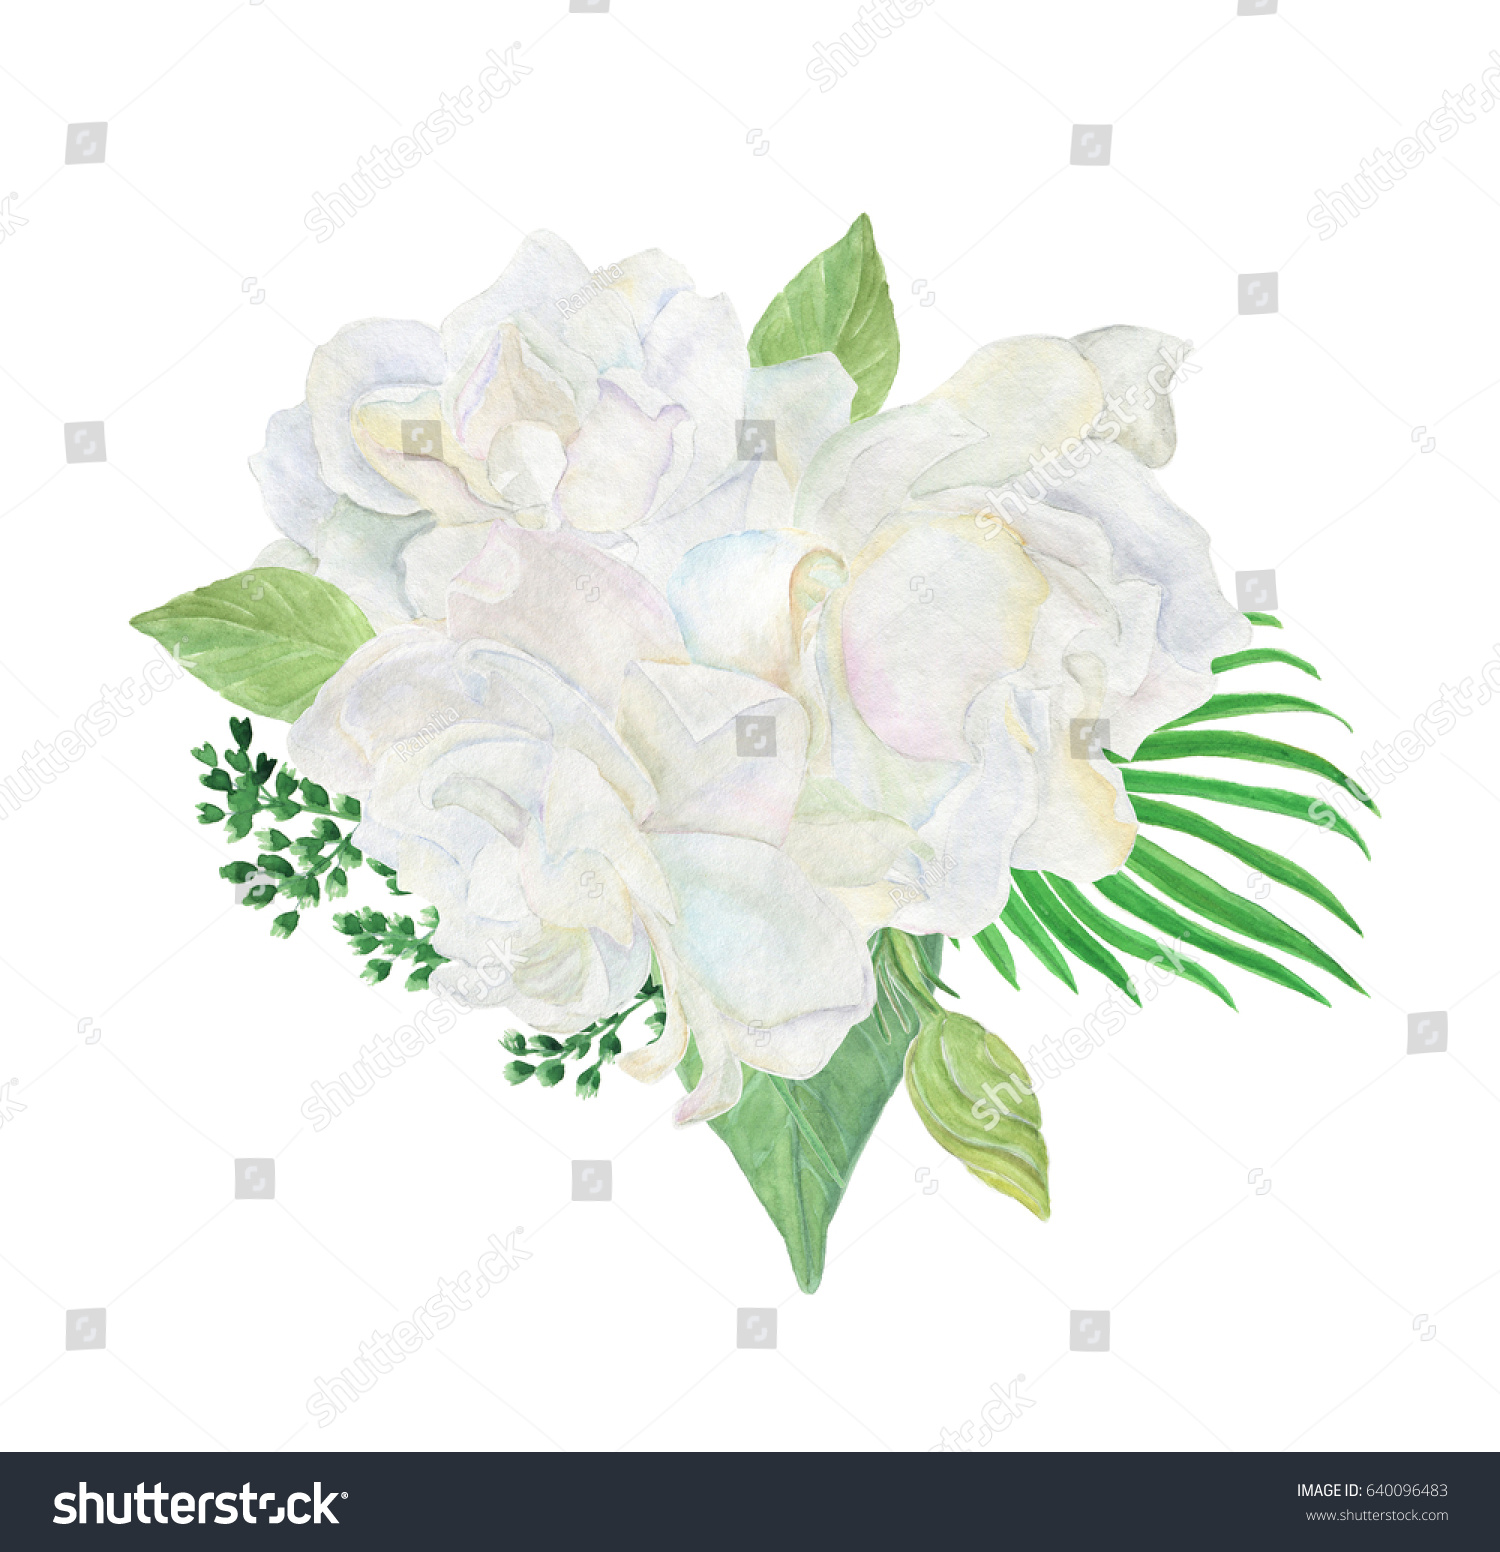 Colorful Floral Collection Leaves White Gardenia Stock Illustration